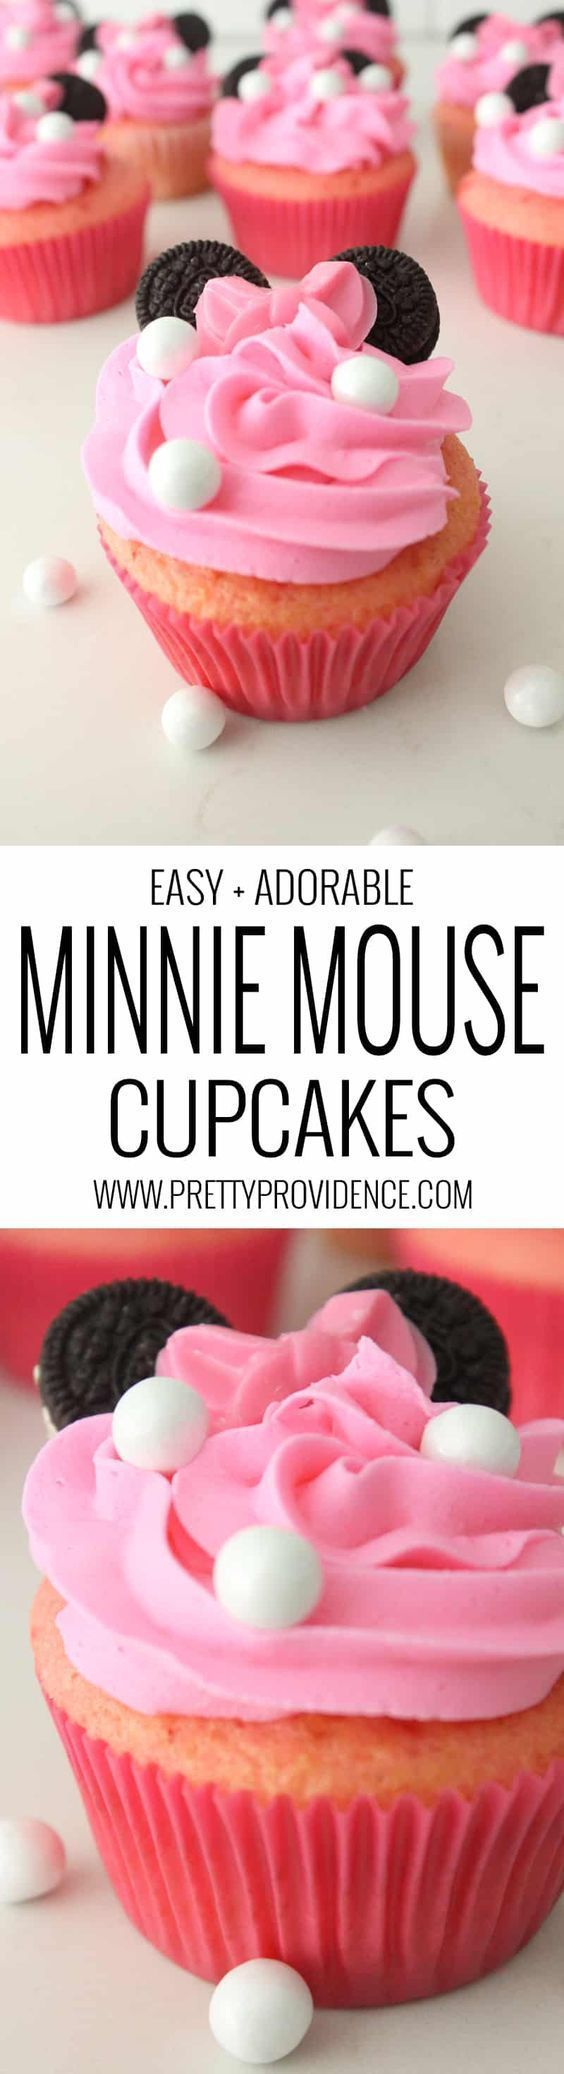 How amazing are these Minnie Mouse cupcakes?!! SUPER EASY to throw together, too! @DisneyJunior #minnieme #ad